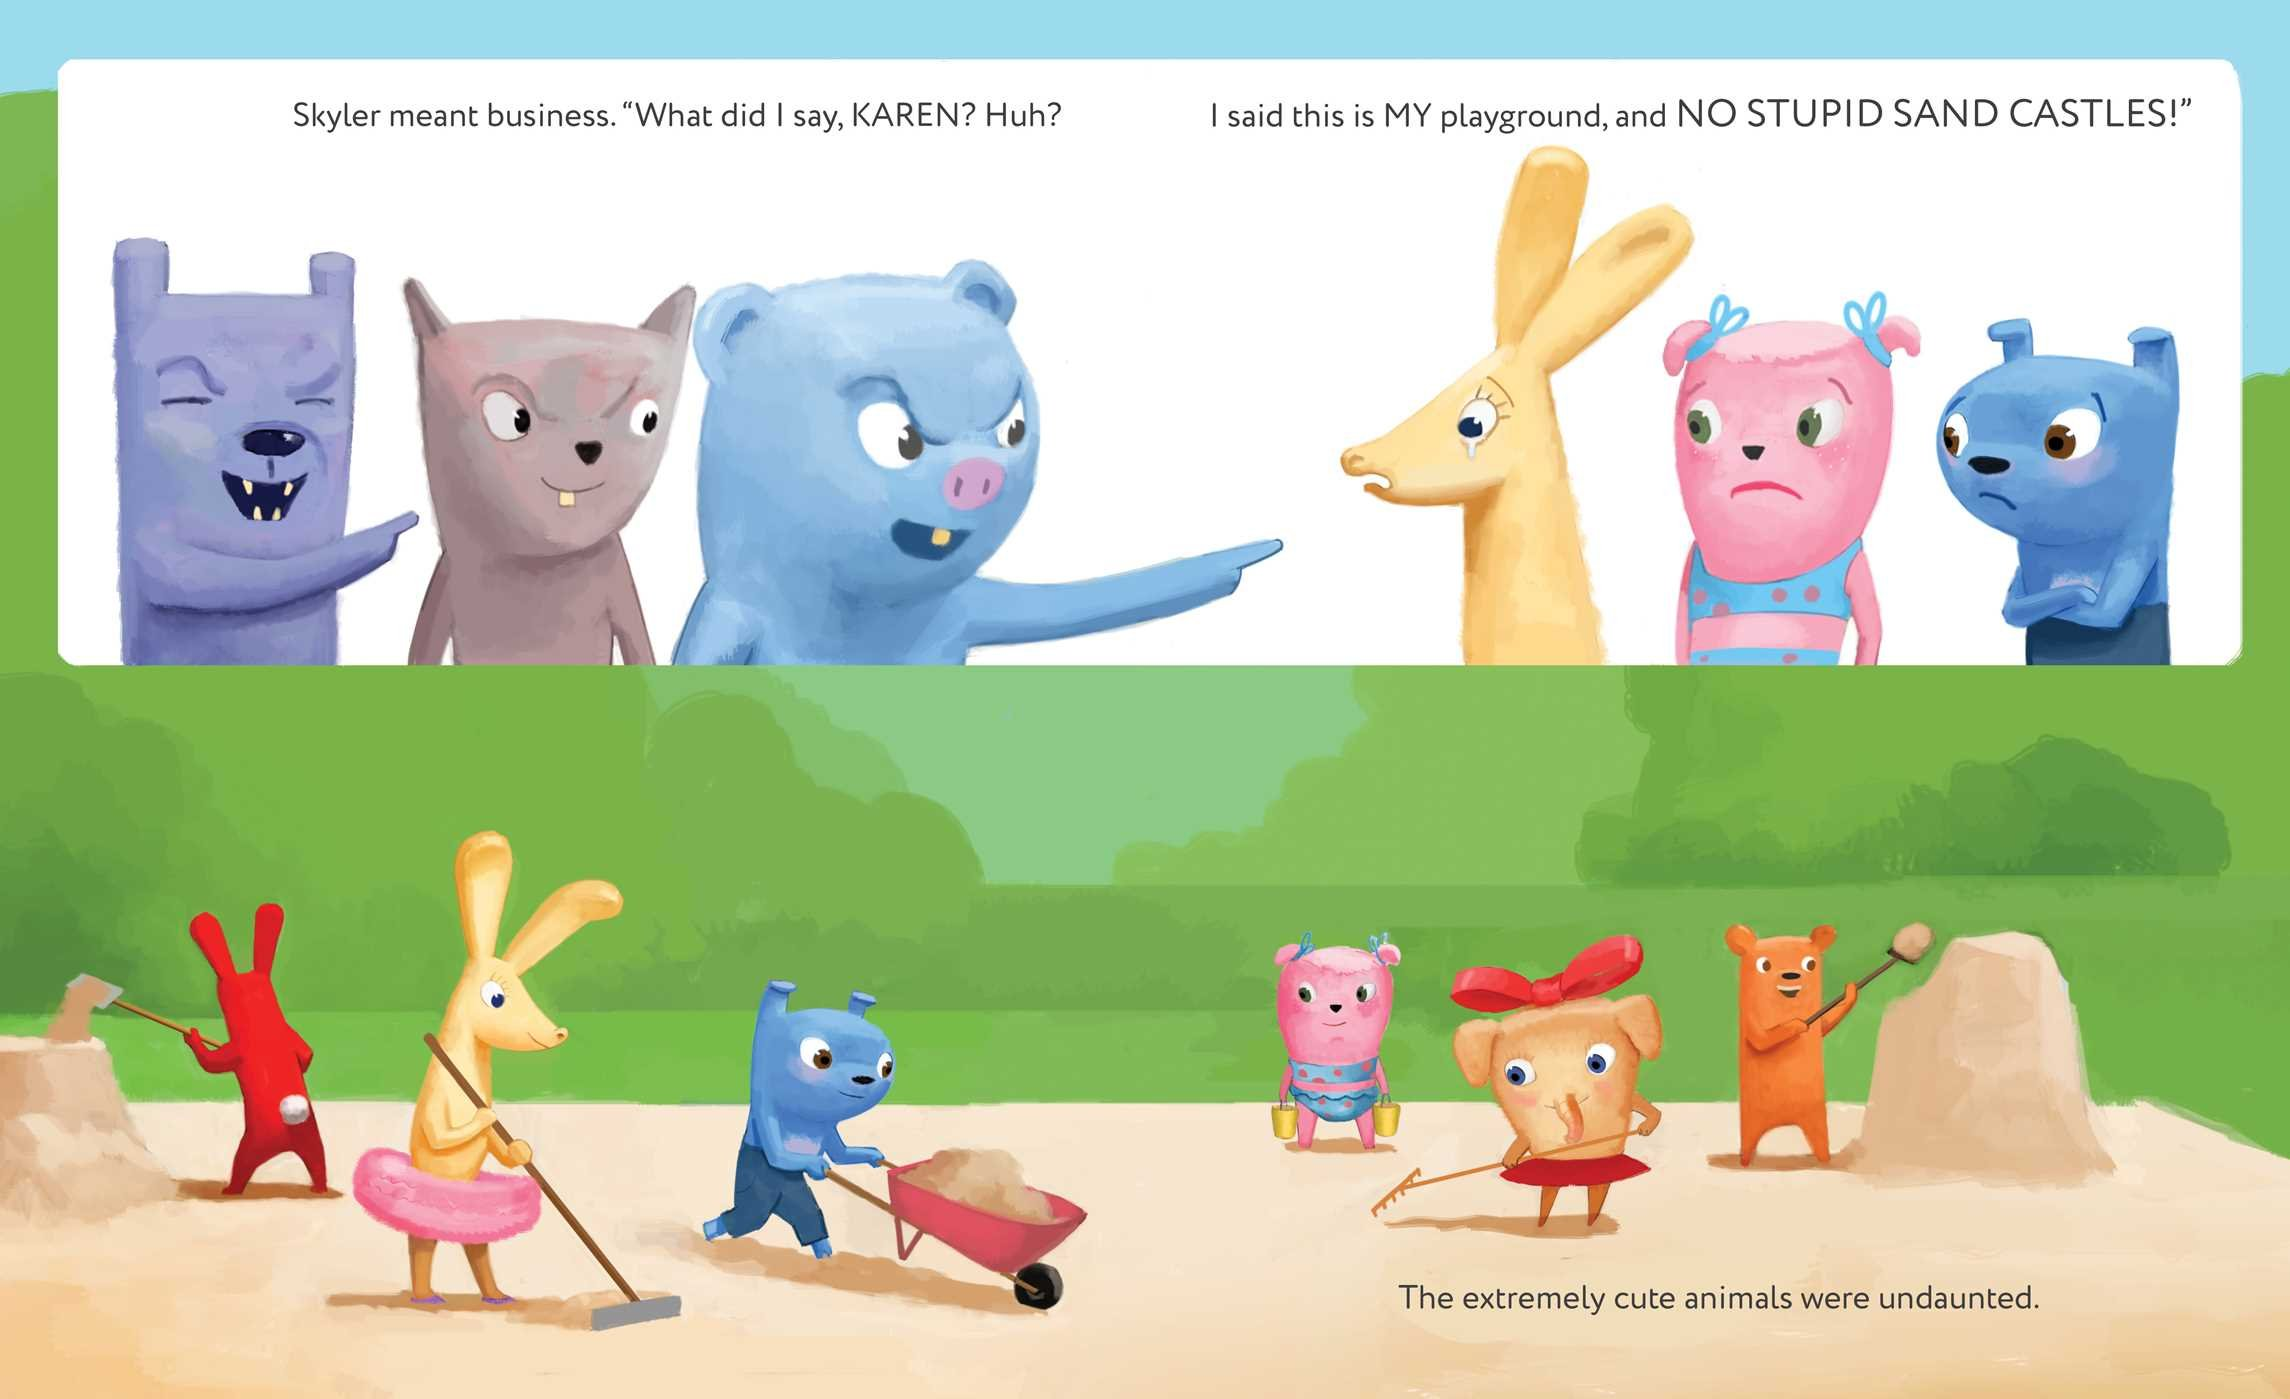 Extremely cute animals operating heavy machinery david gordon extremely cute animals operating heavy machinery david gordon 9781416924418 amazon books fandeluxe Image collections